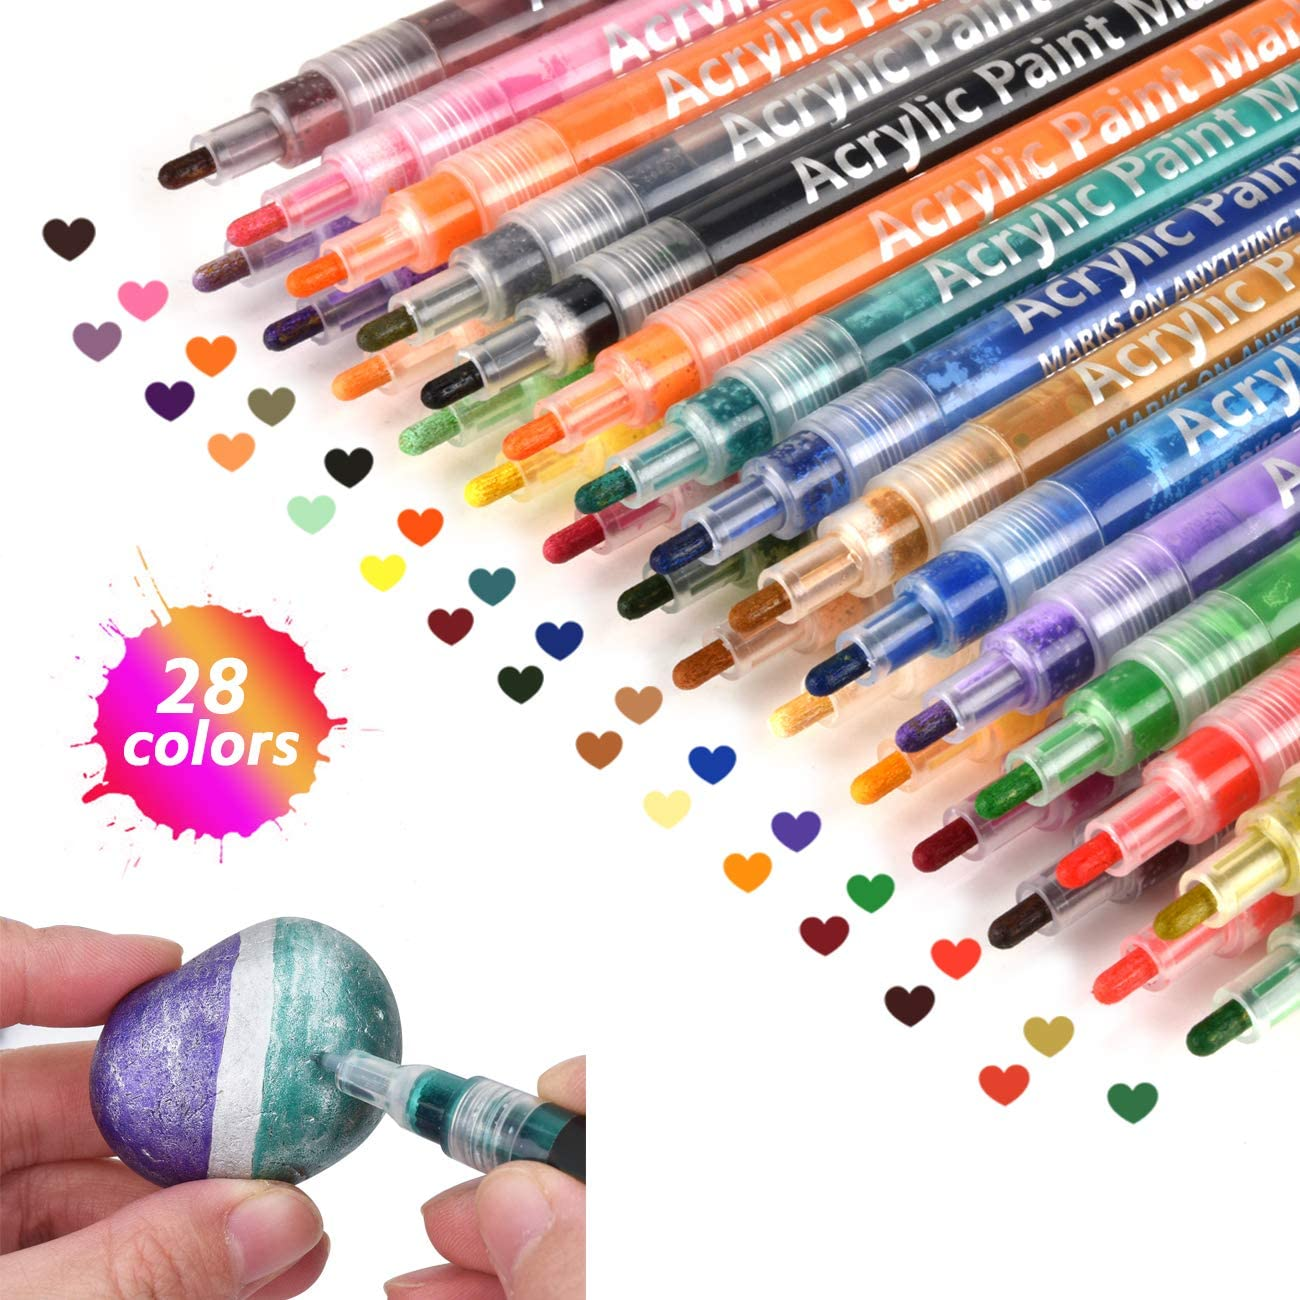 Acrylic Max 52% OFF 28 Colors Drawing Marker Paint for Los Angeles Mall Wood Glass Pens Roc